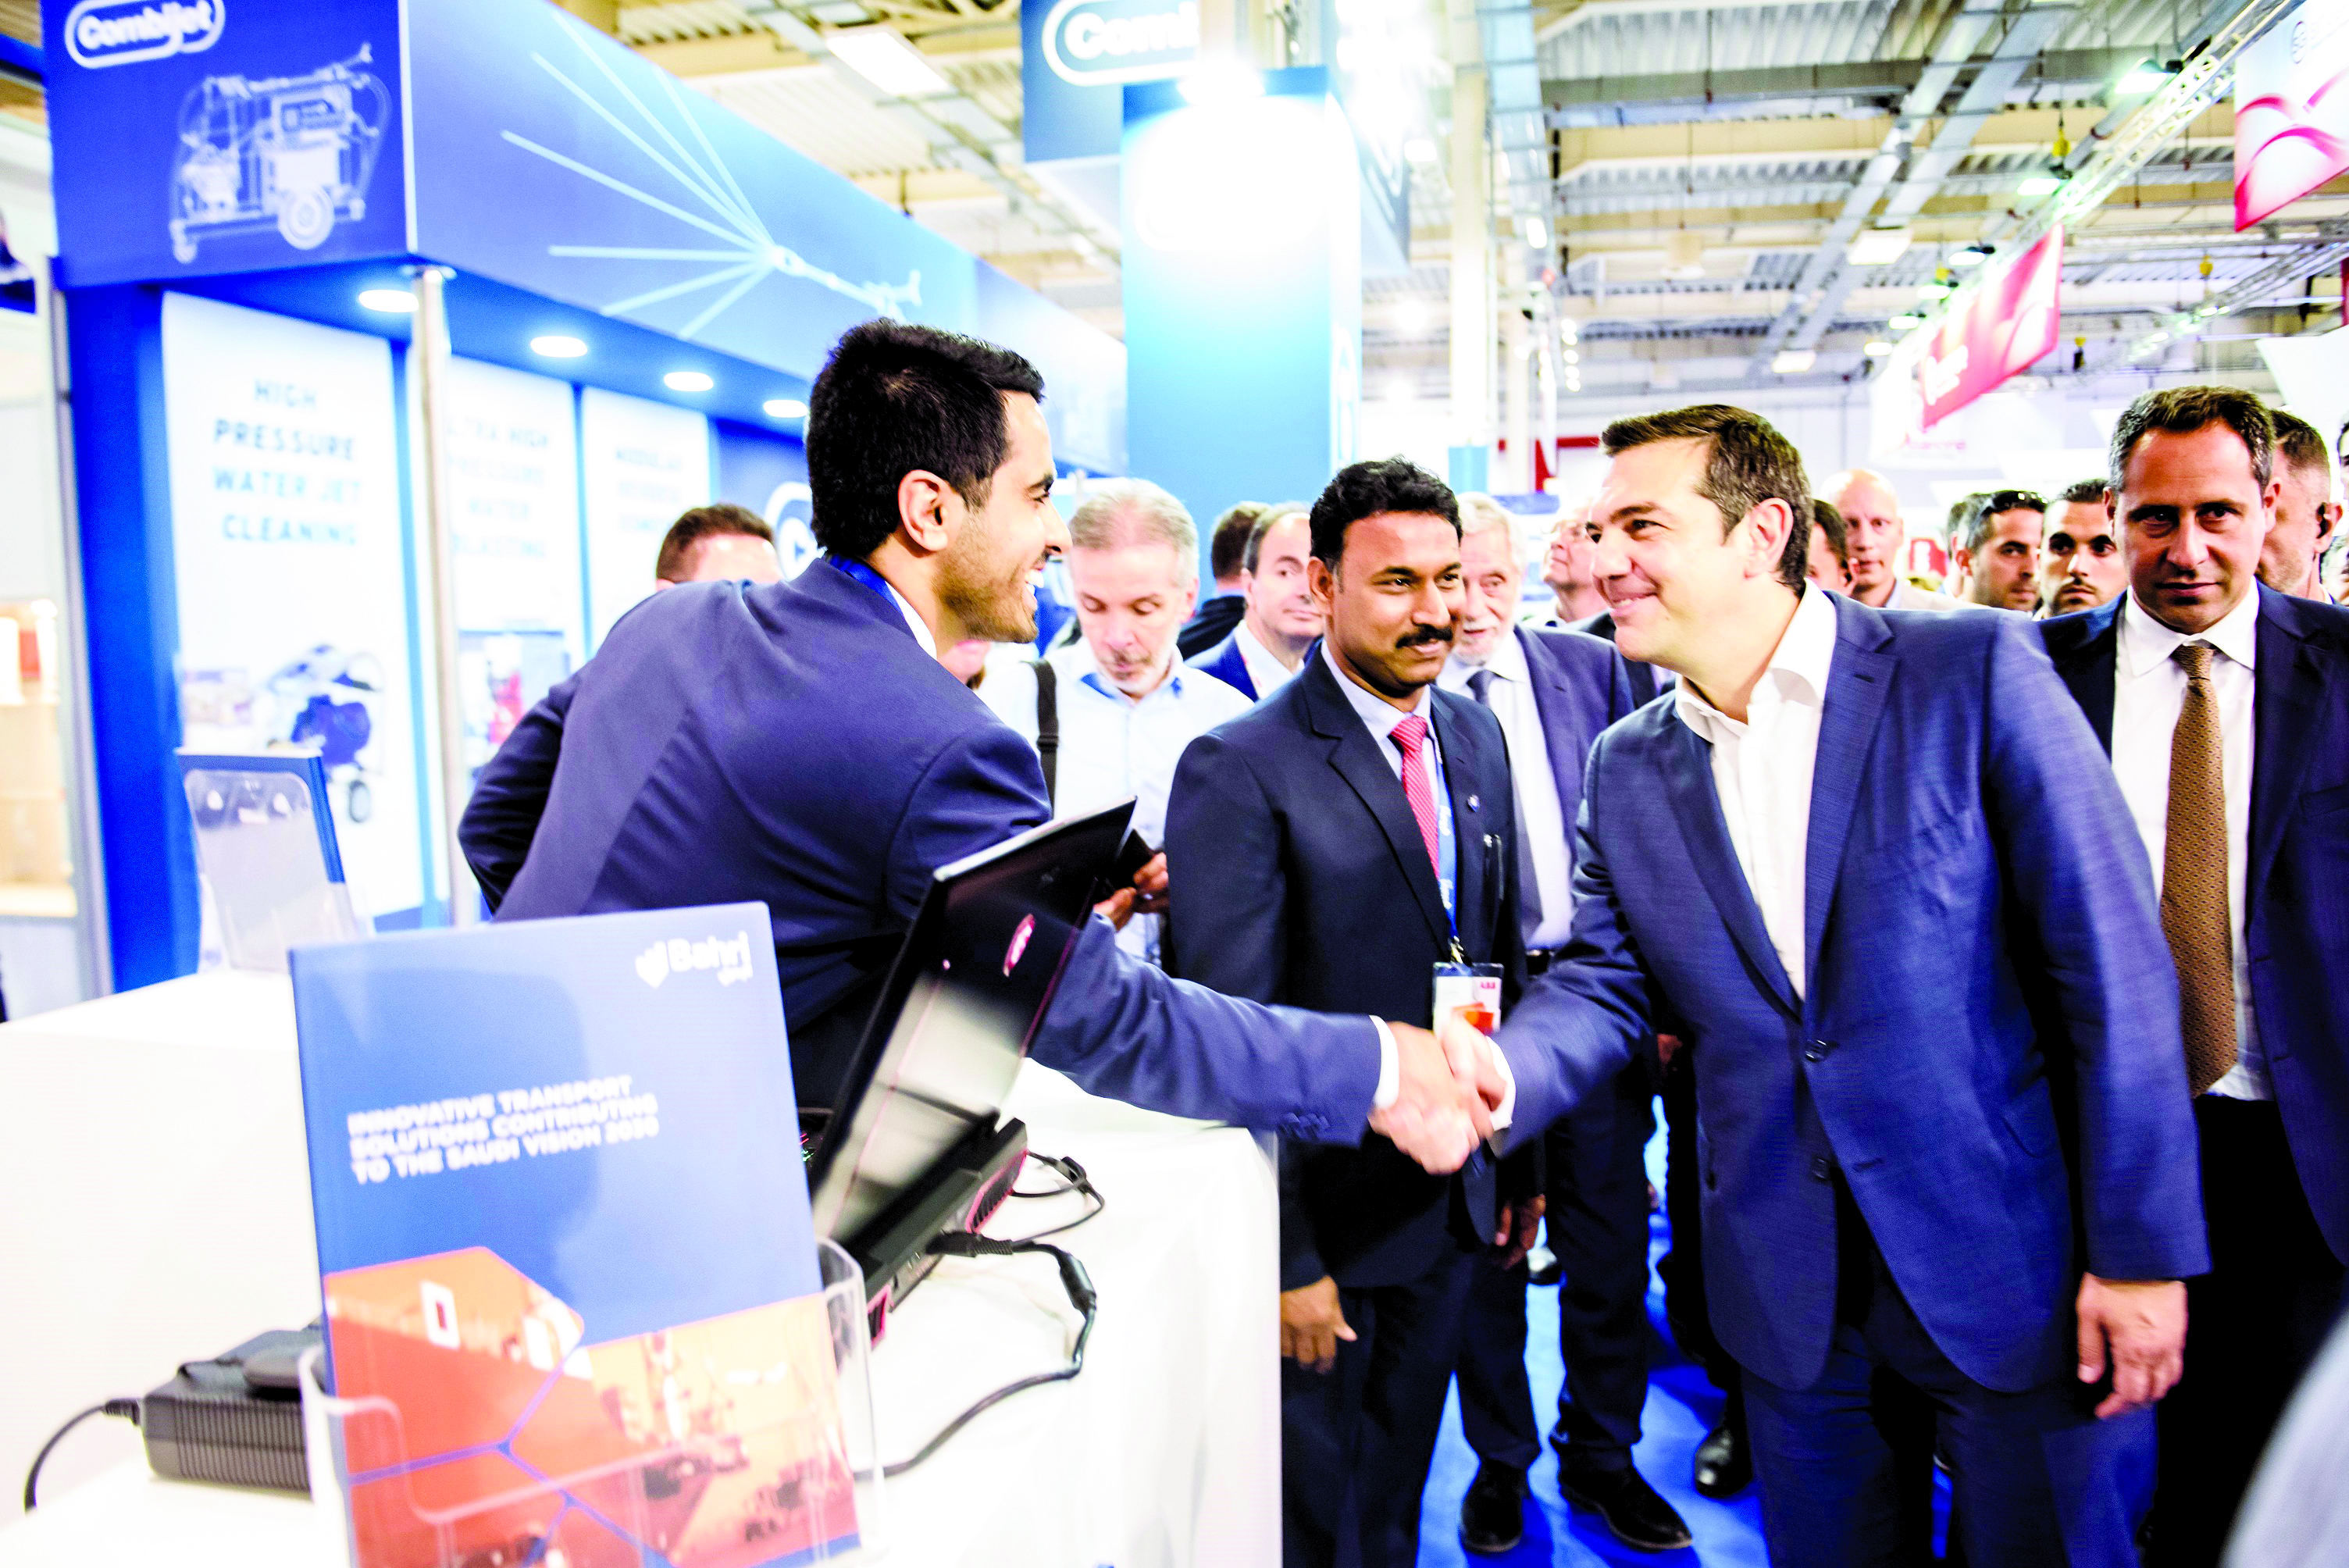 Alexis Tsipras, Prime Minister of Greece, visiting Bahri's booth at Posidonia 2018